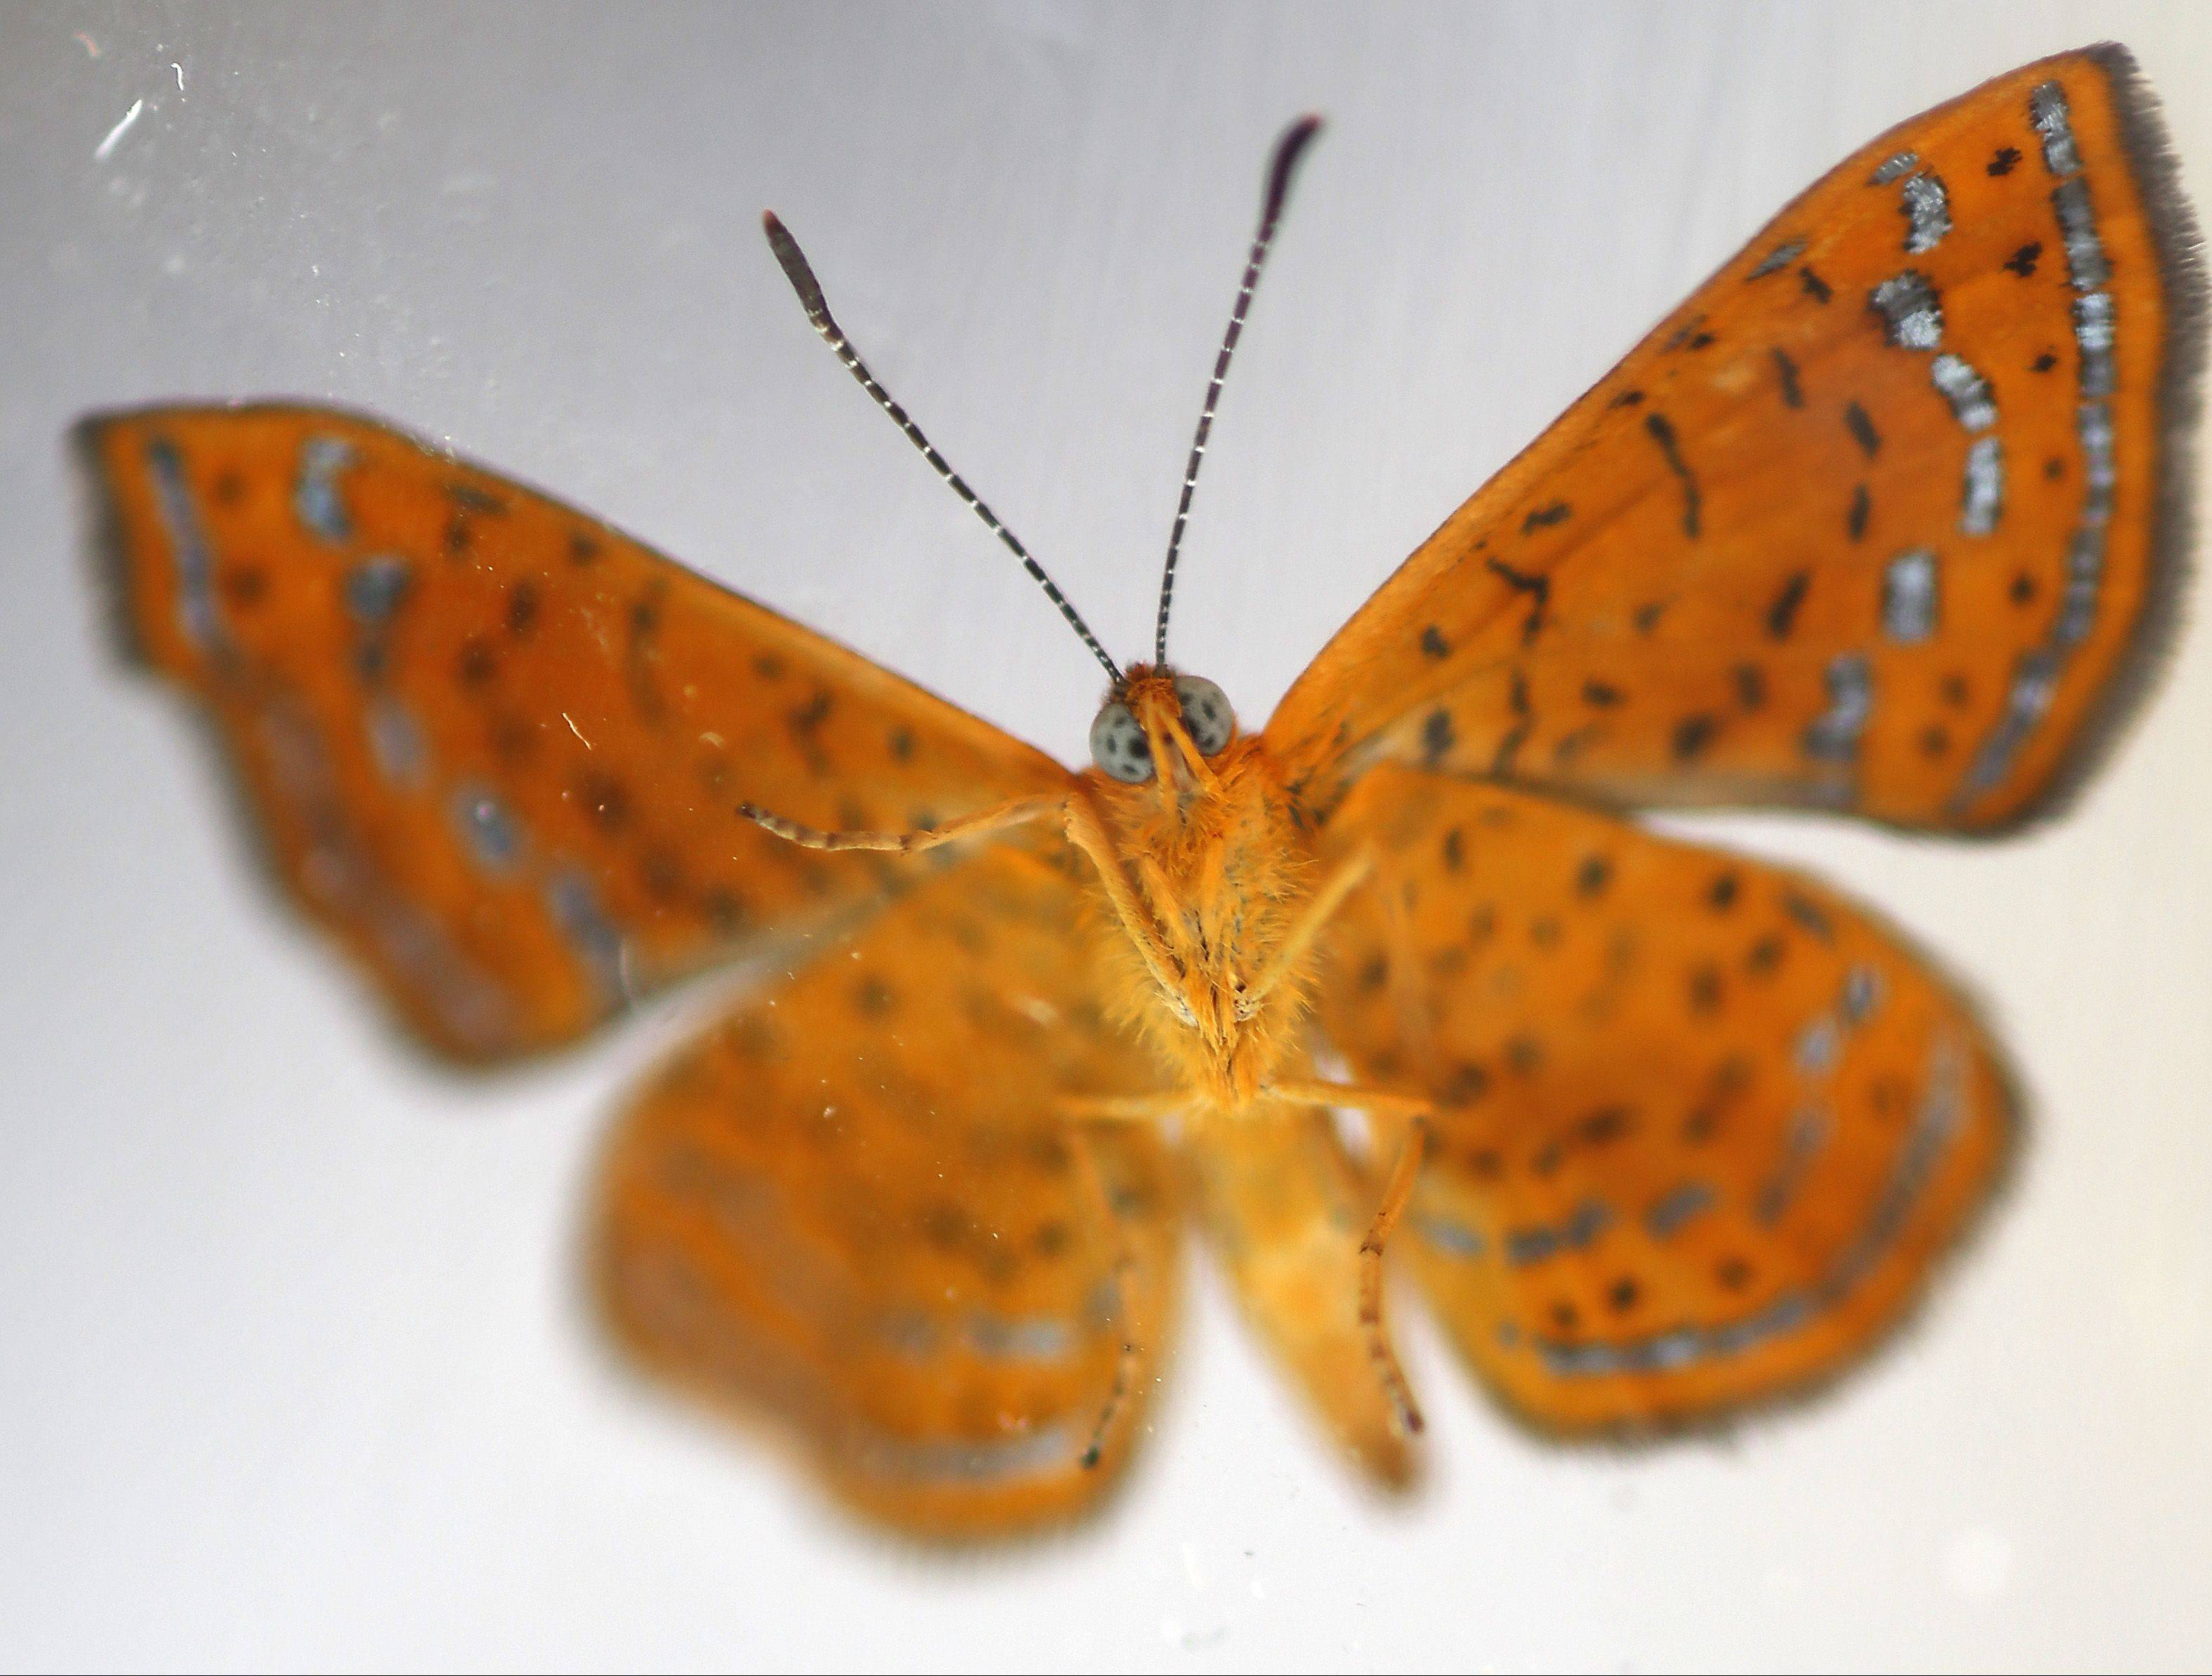 The swamp metalmark butterflies are known for their reddish-brown wings that are lightly checkered. Here one is seen through clear plastic as it clings to the top of the container prior to the release Thursday.